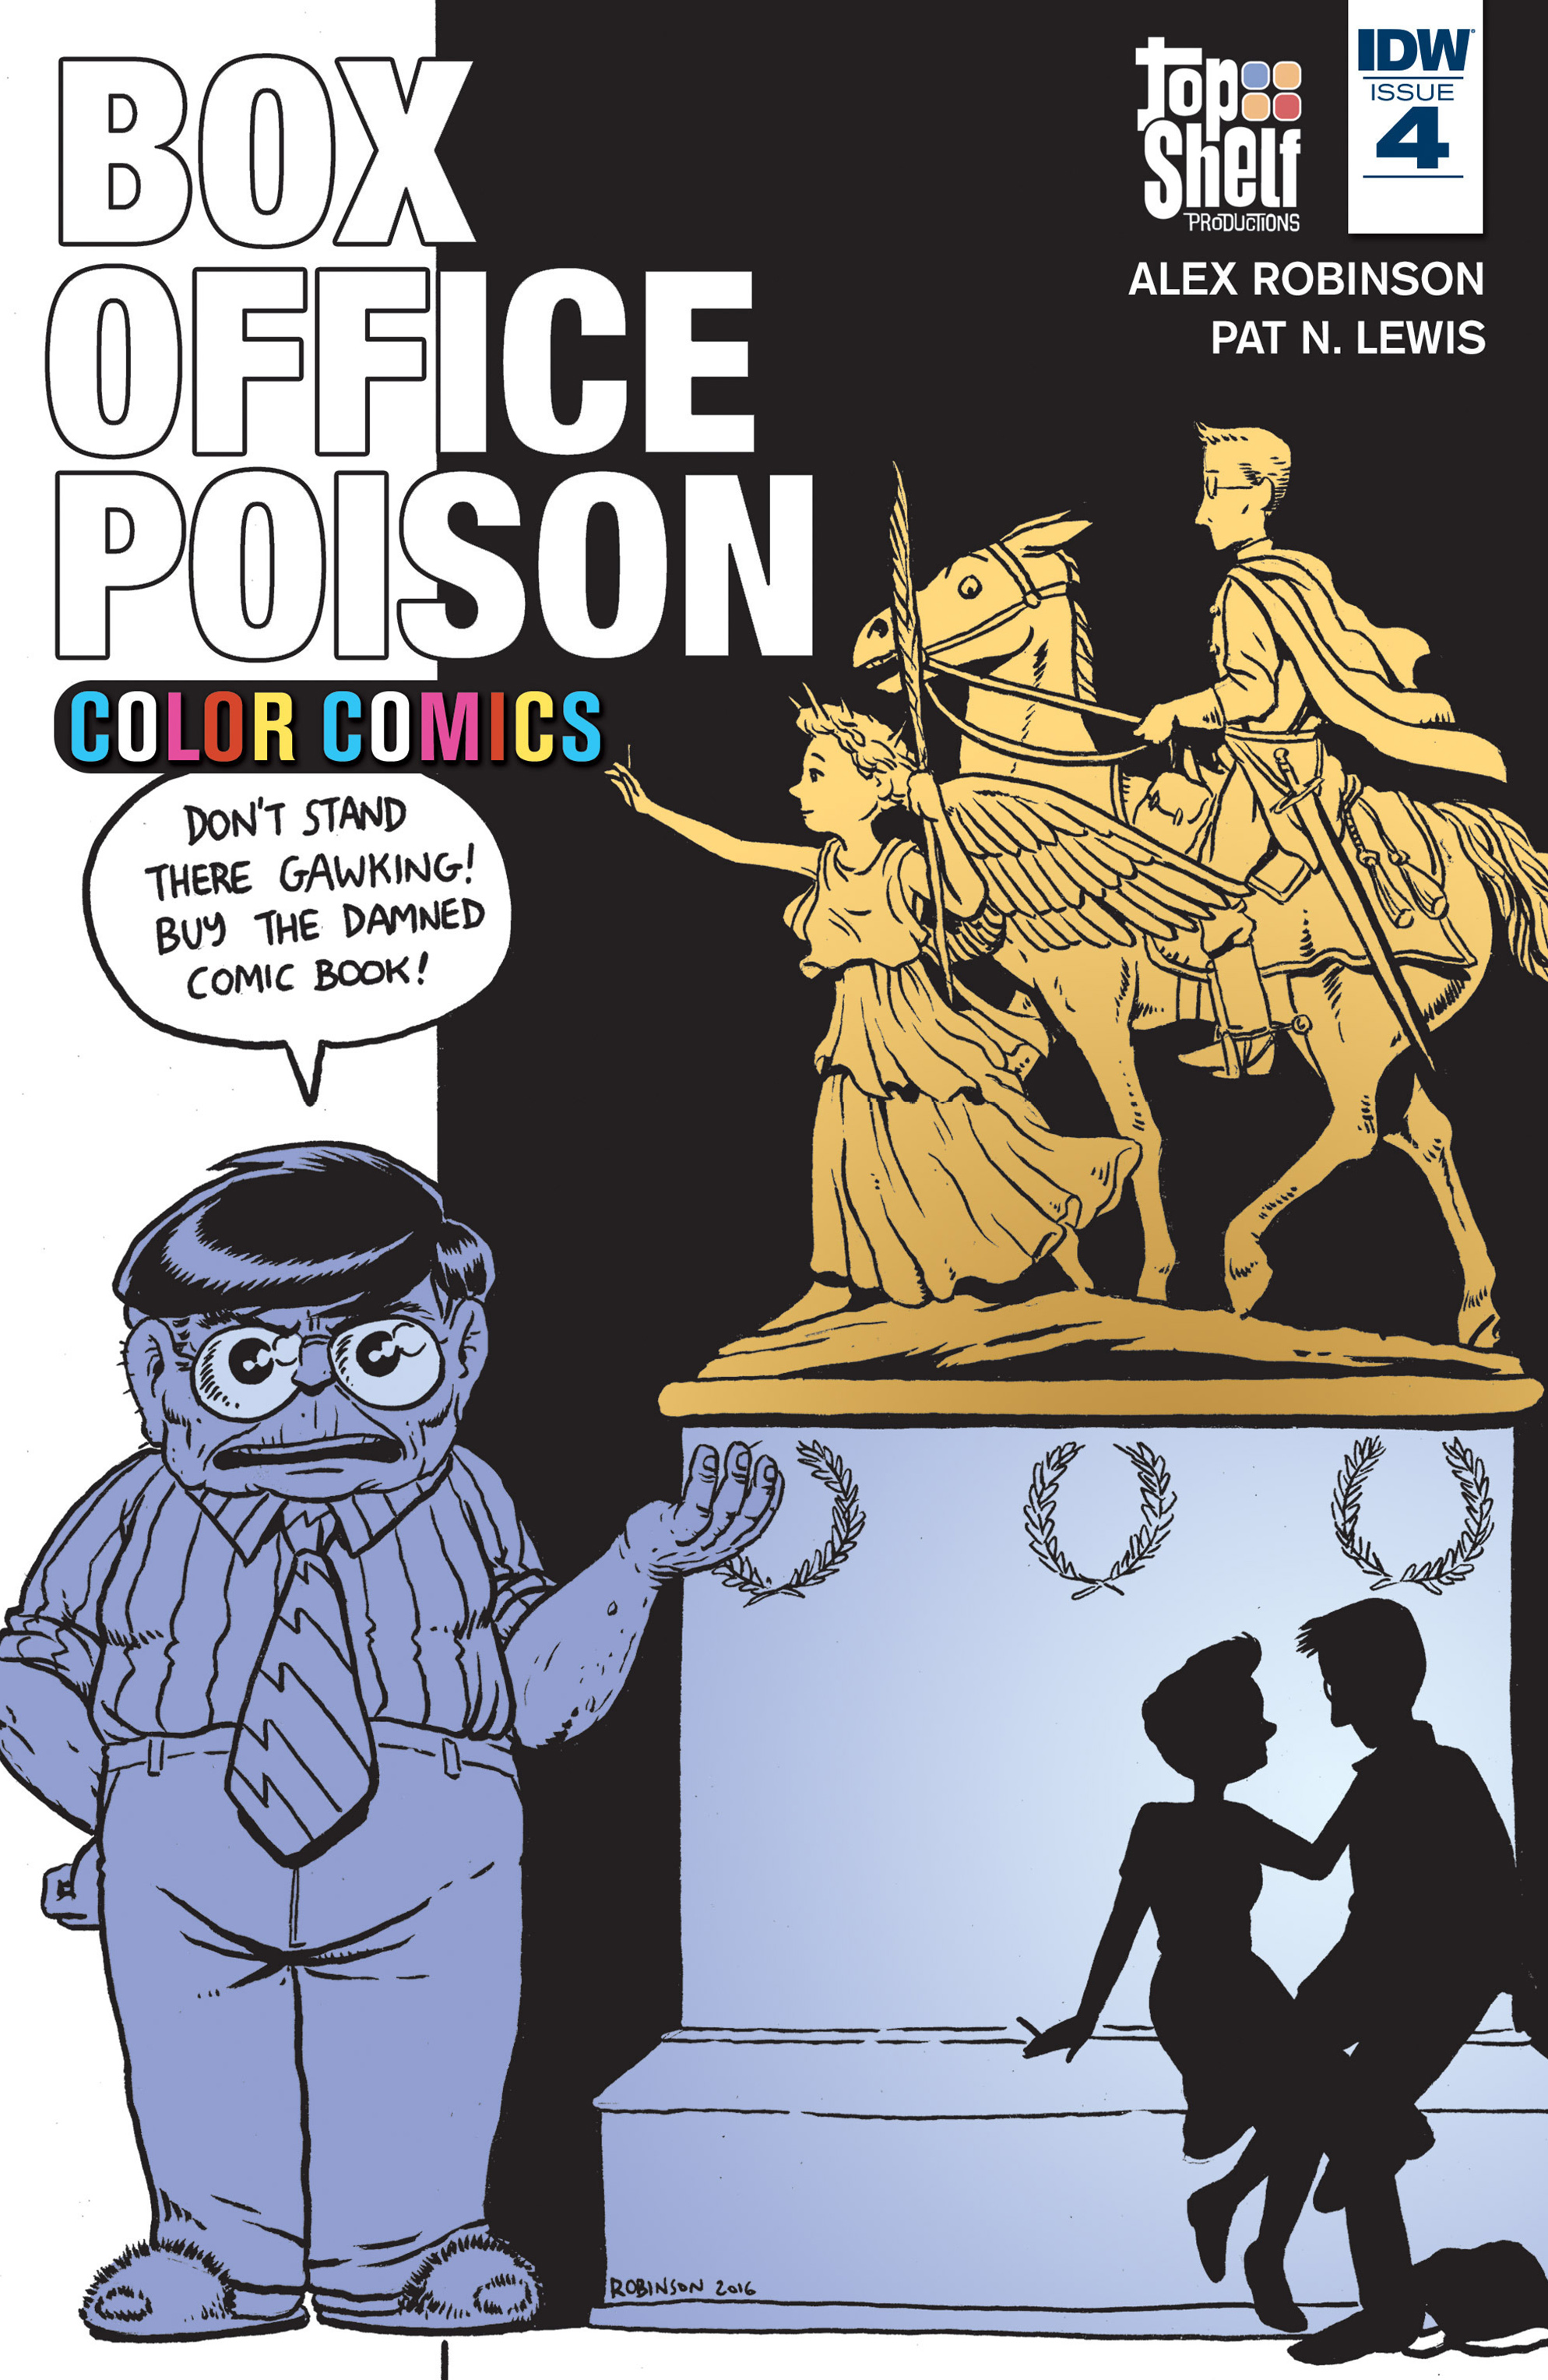 Read online Box Office Poison Color Comics comic -  Issue #4 - 1